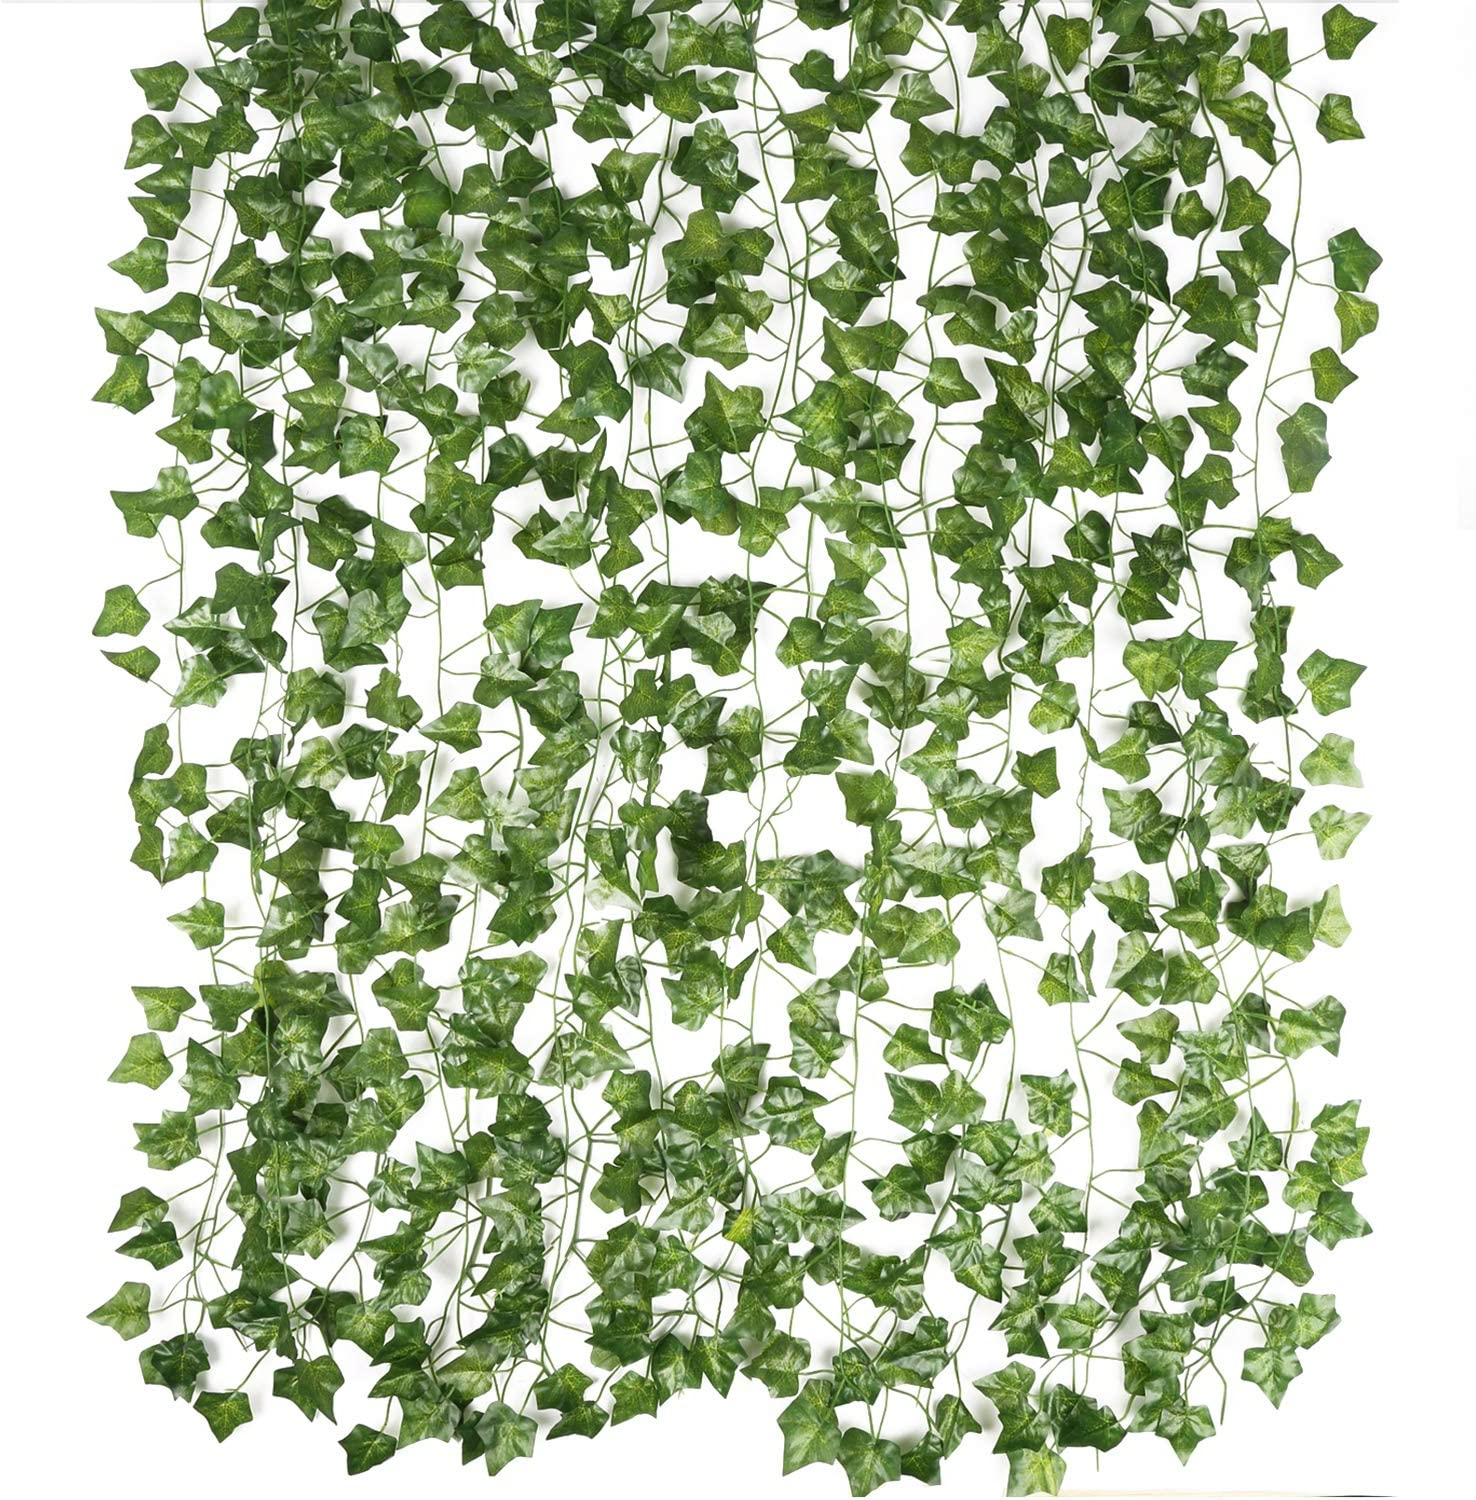 Magbeauty Artificial Ivy Garland Fake Vines - 12 Strands Fake Wall Plants Green Garland for Room Decor, Home, Kitchen, Garden, Office, Wedding, Wall Decor (12)